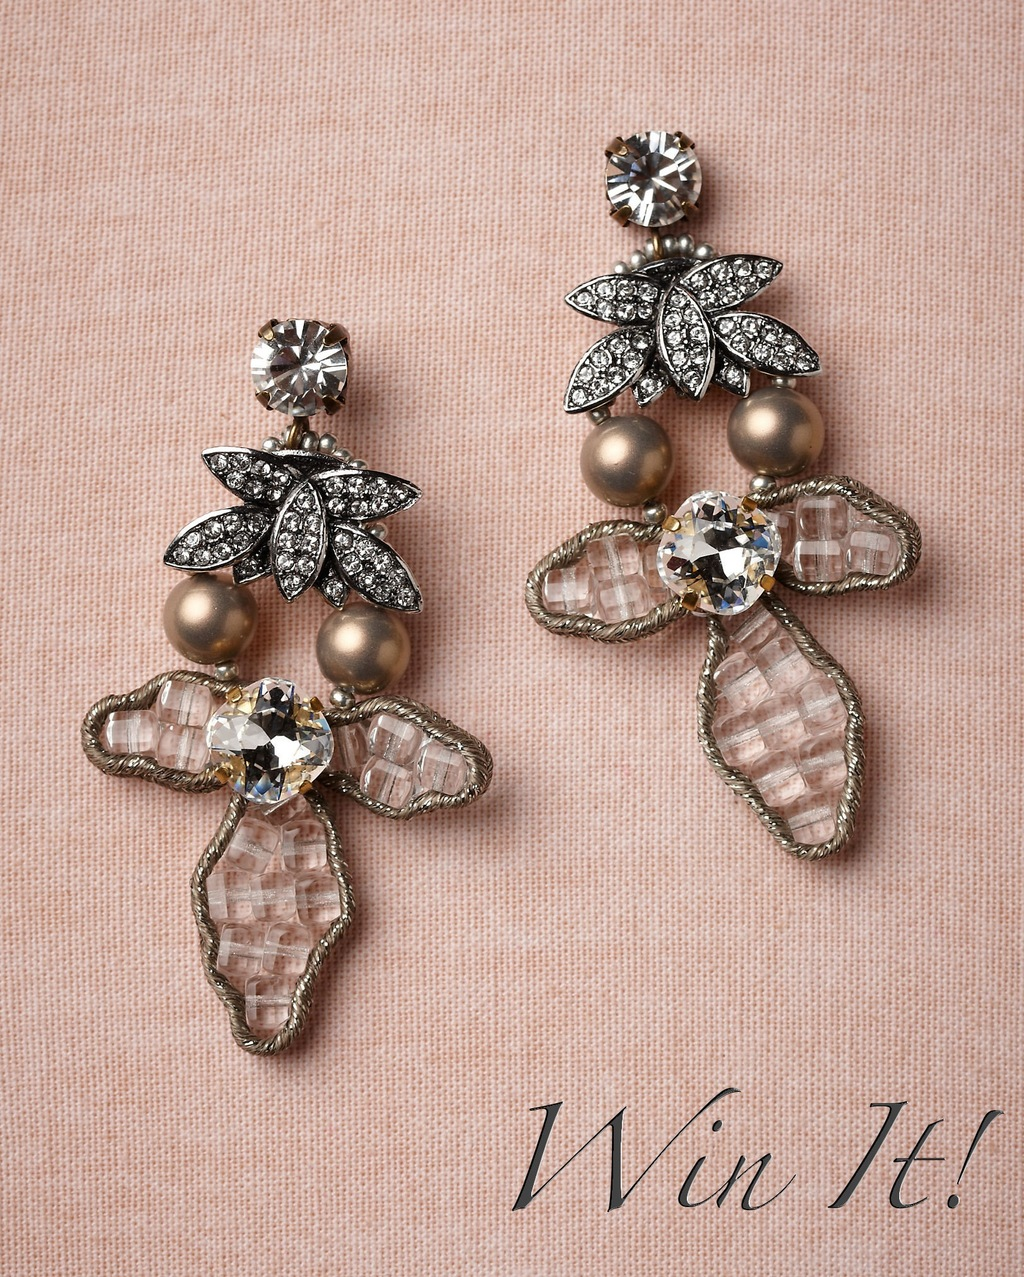 Wedding-giveaway-for-brides-and-wedding-guests-covetable-earrings-from-bhldn.full